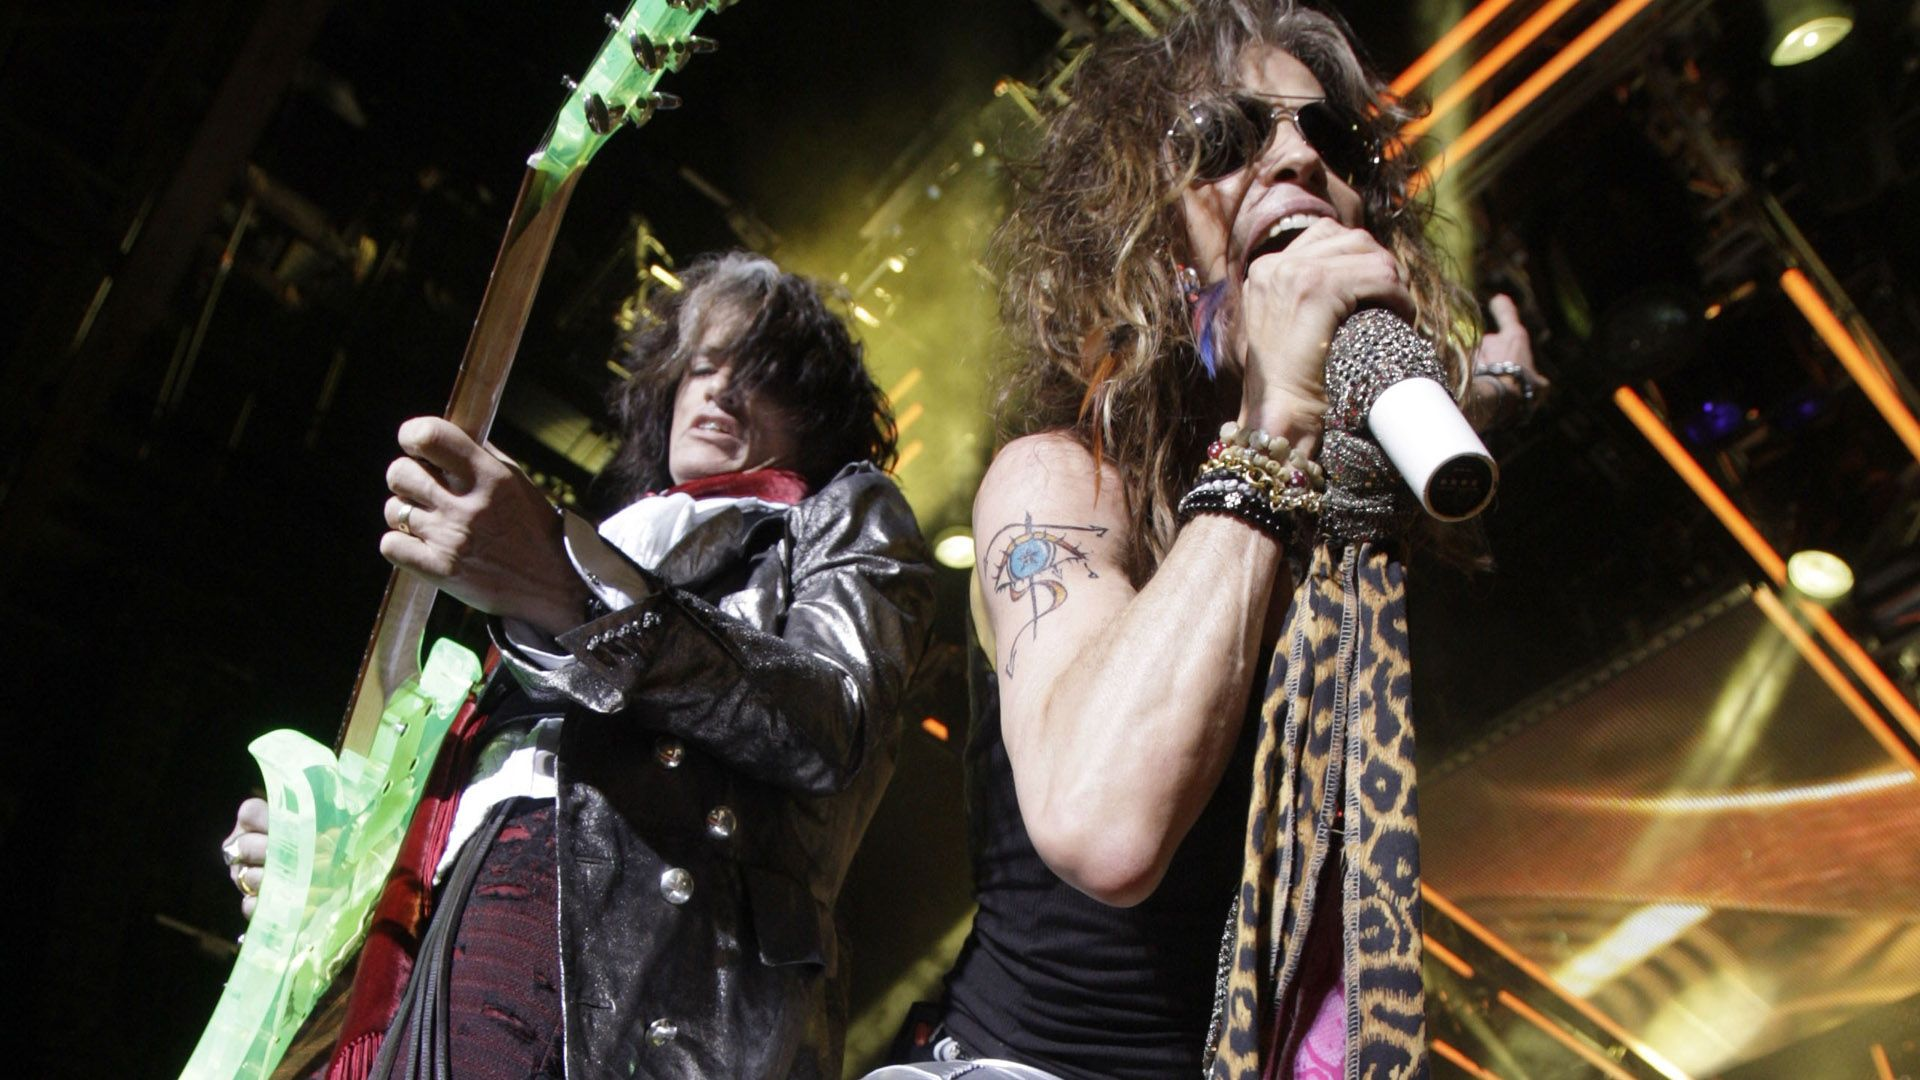 View, Download, Rate, And Comment On This Aerosmith Image( )